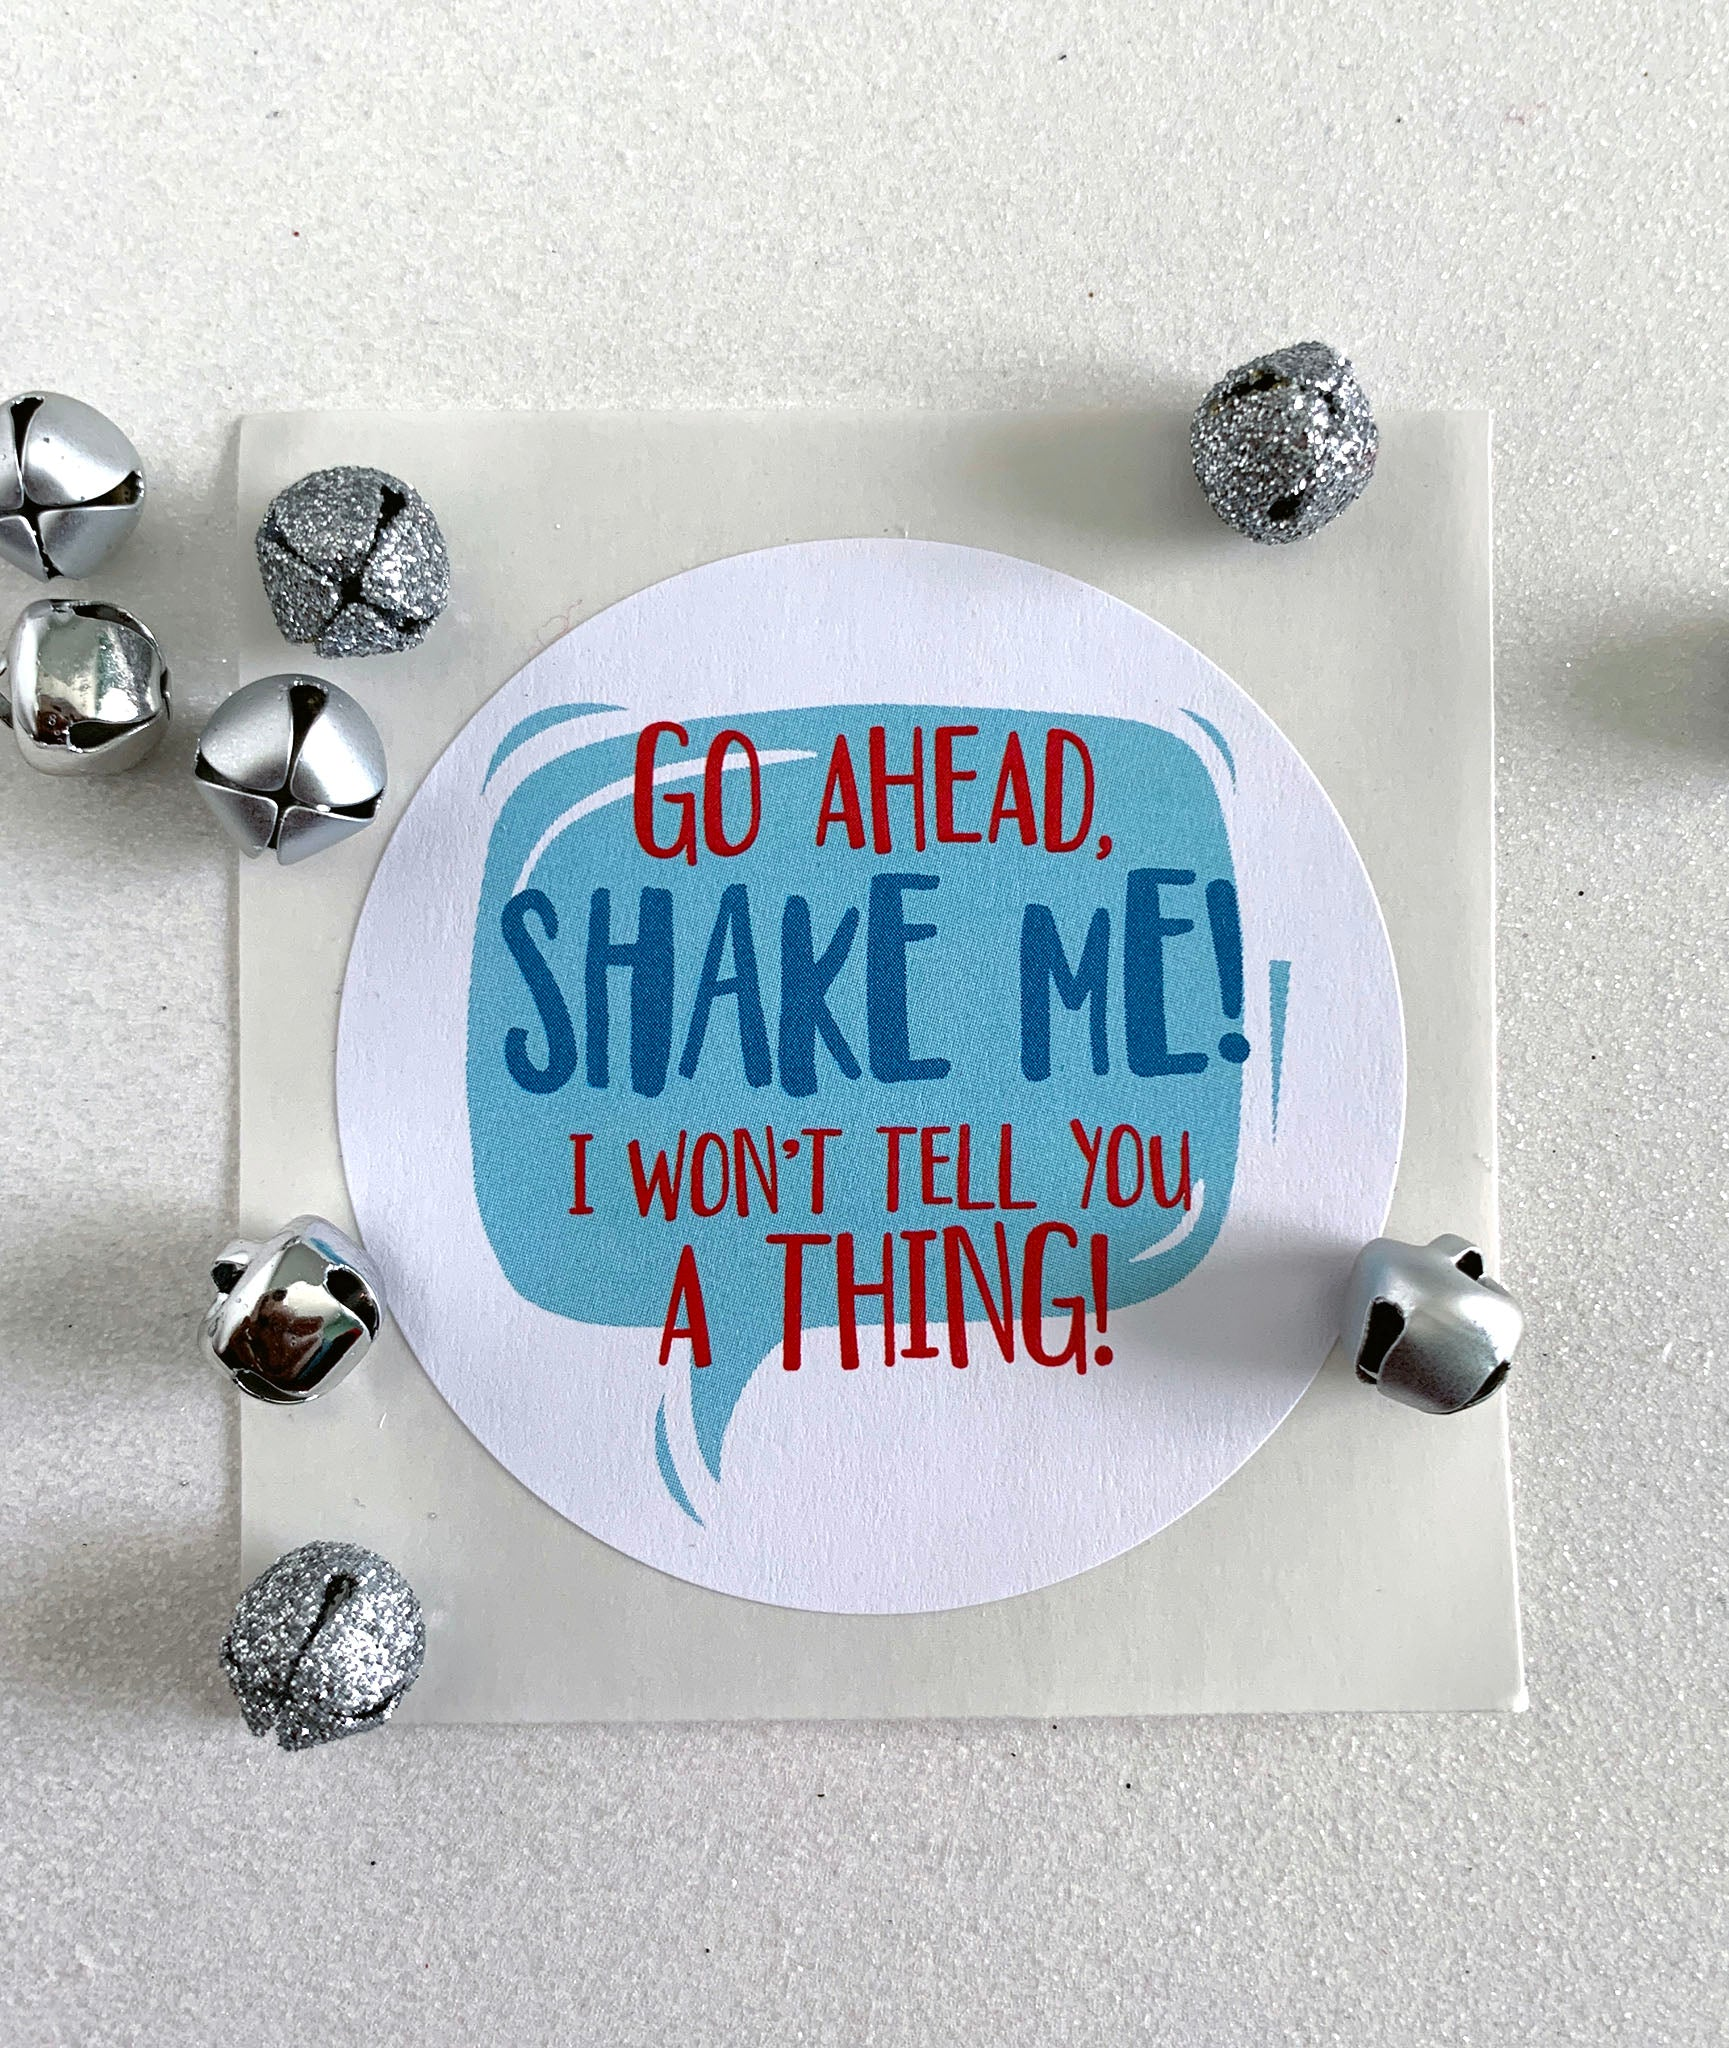 Funny Go Ahead Shake Me Christmas Gift Sticker - Invited Too